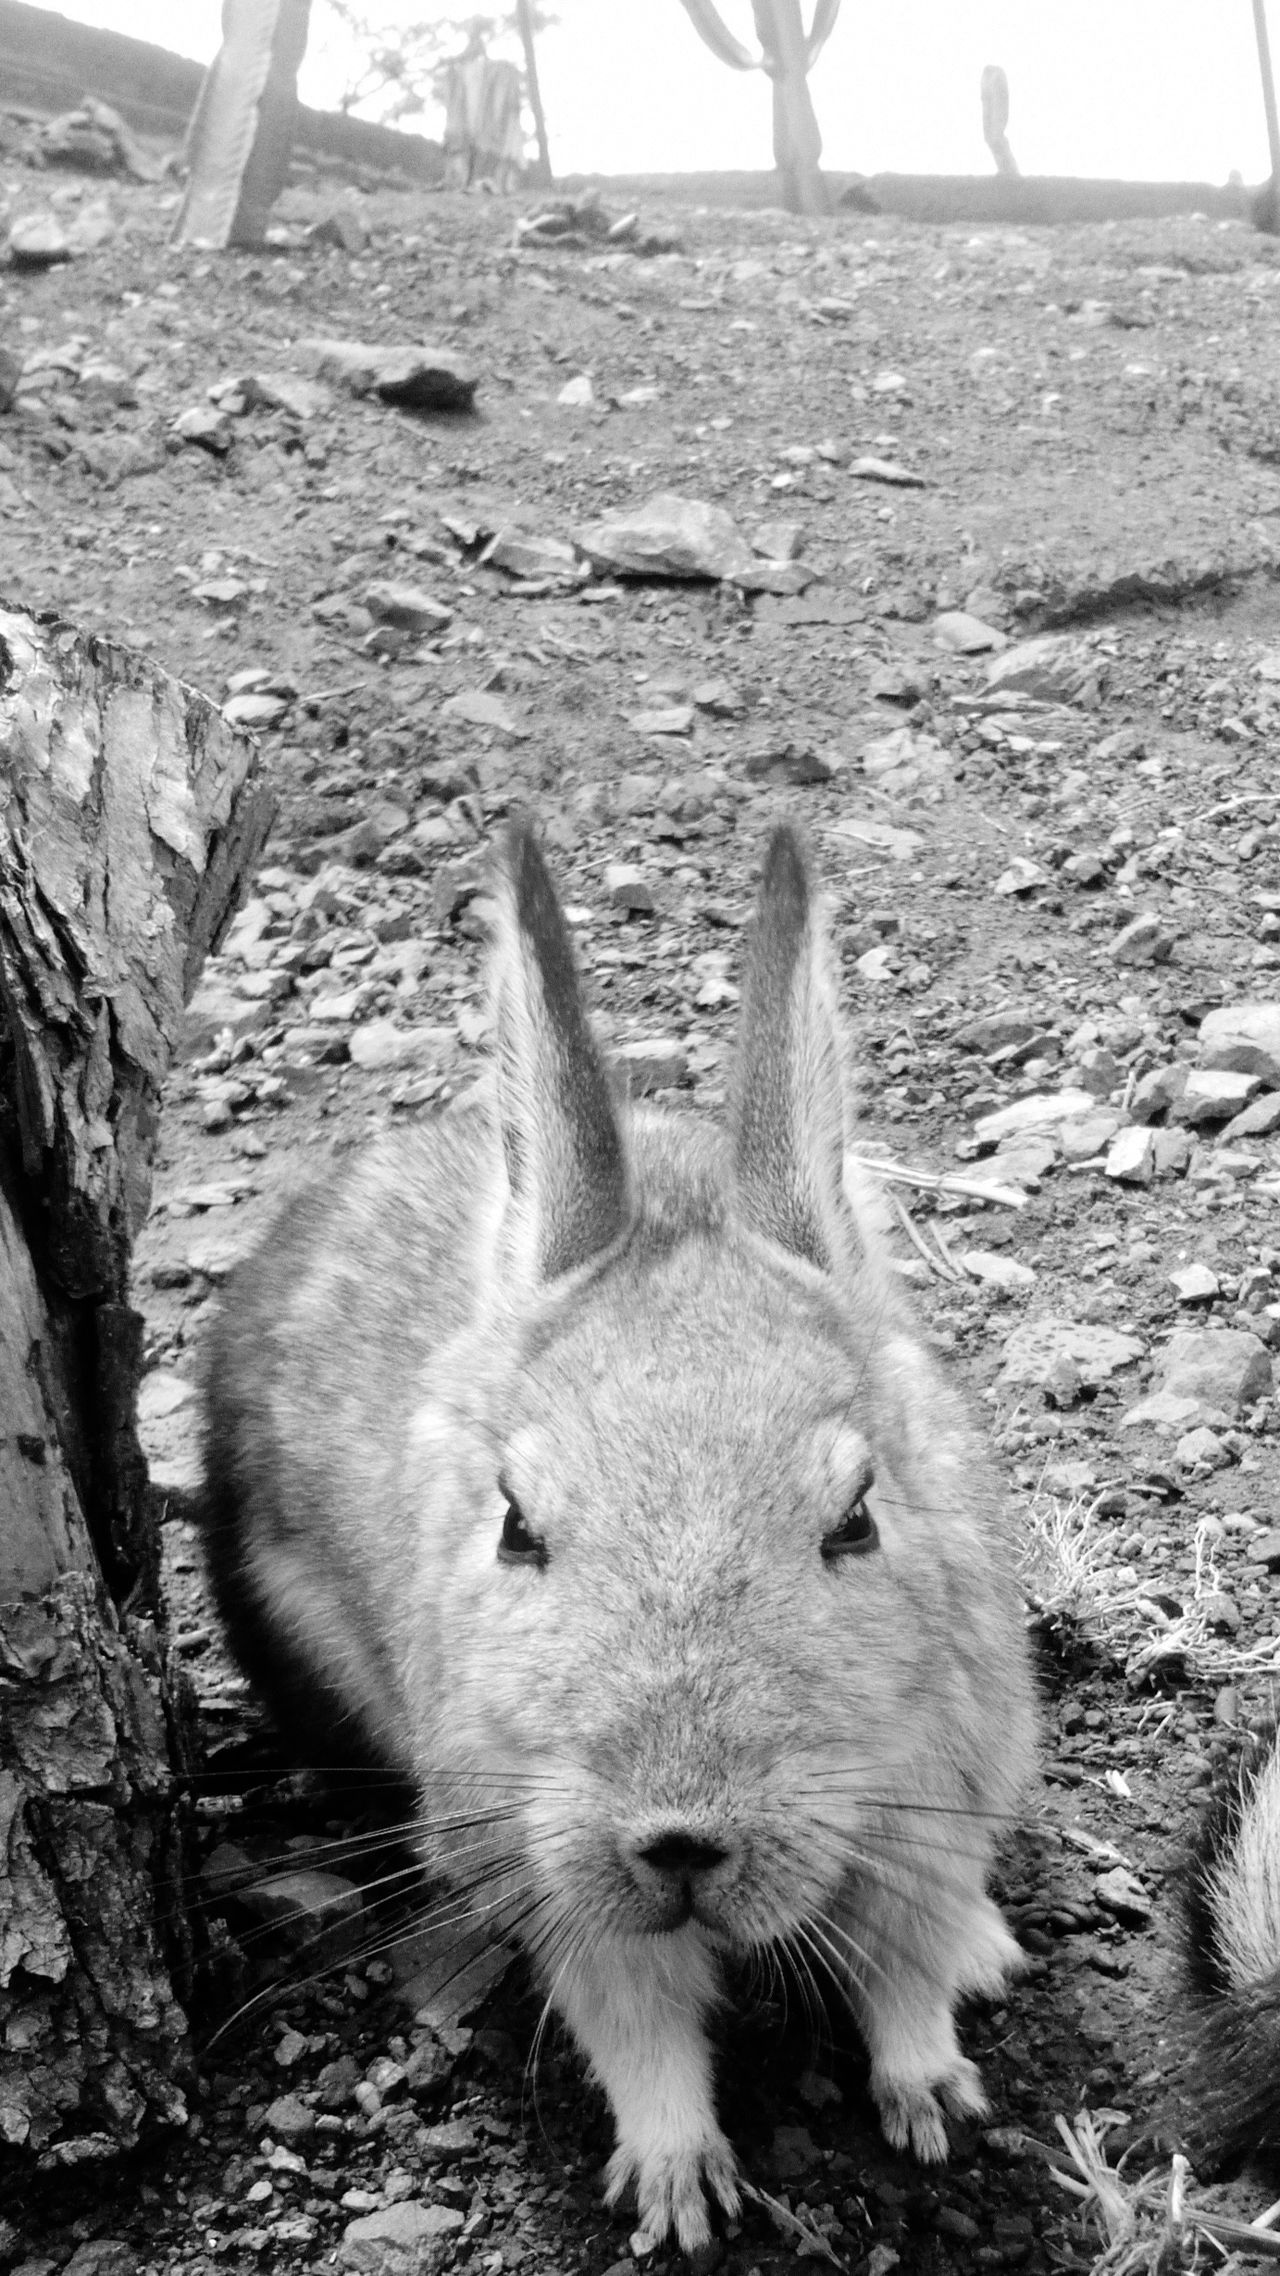 Vizcacha Animals Ayacucho Perú Fauna Nature Photography Andes Zone Black And White Native Animals Animal Love Sierra Peru Traveling ZooLife Life Is Beautiful Travel Photography SurpriseMe